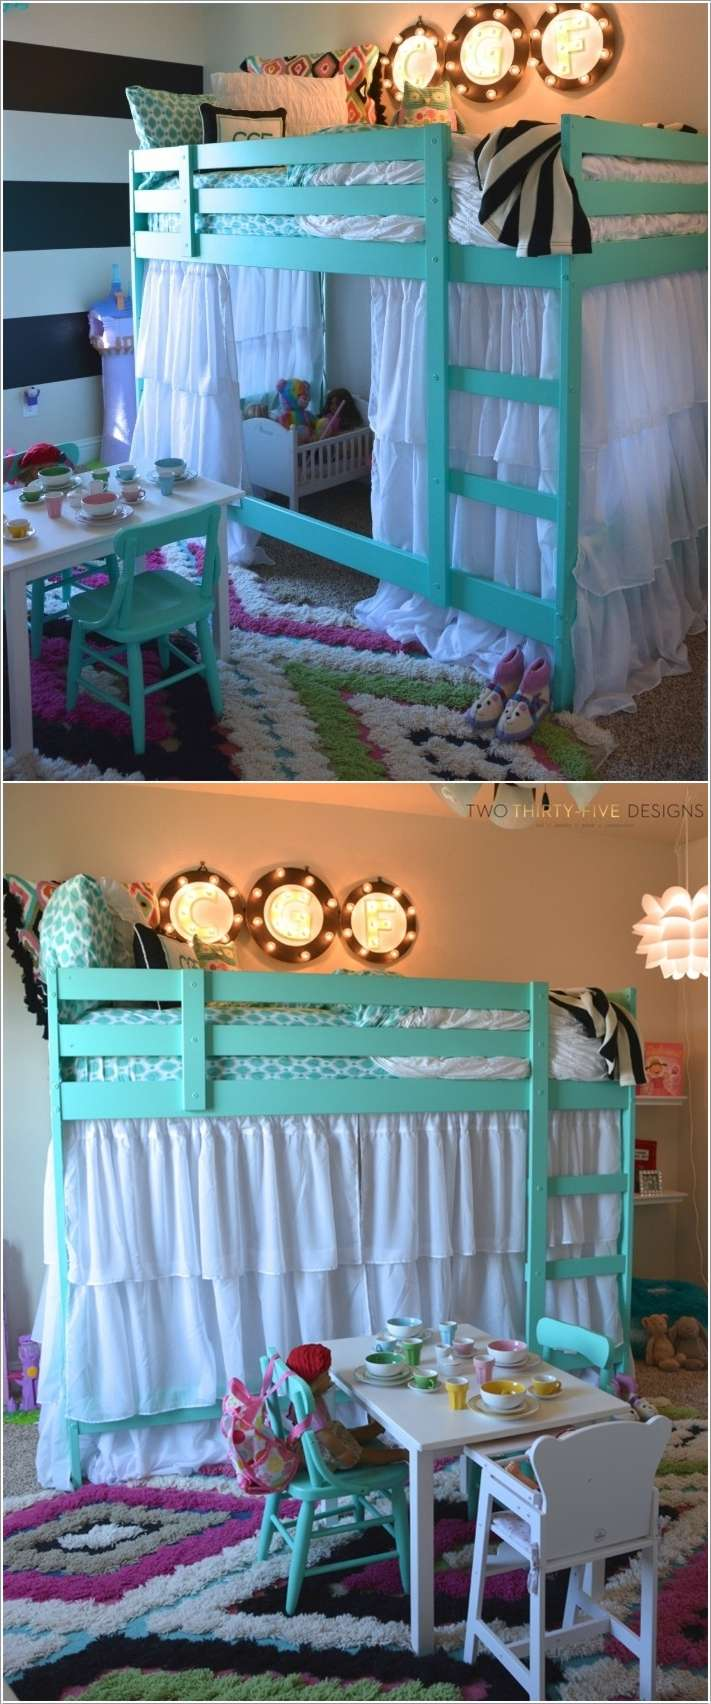 2  15 Cool and Fun Ideas for Your Kids' Room 21